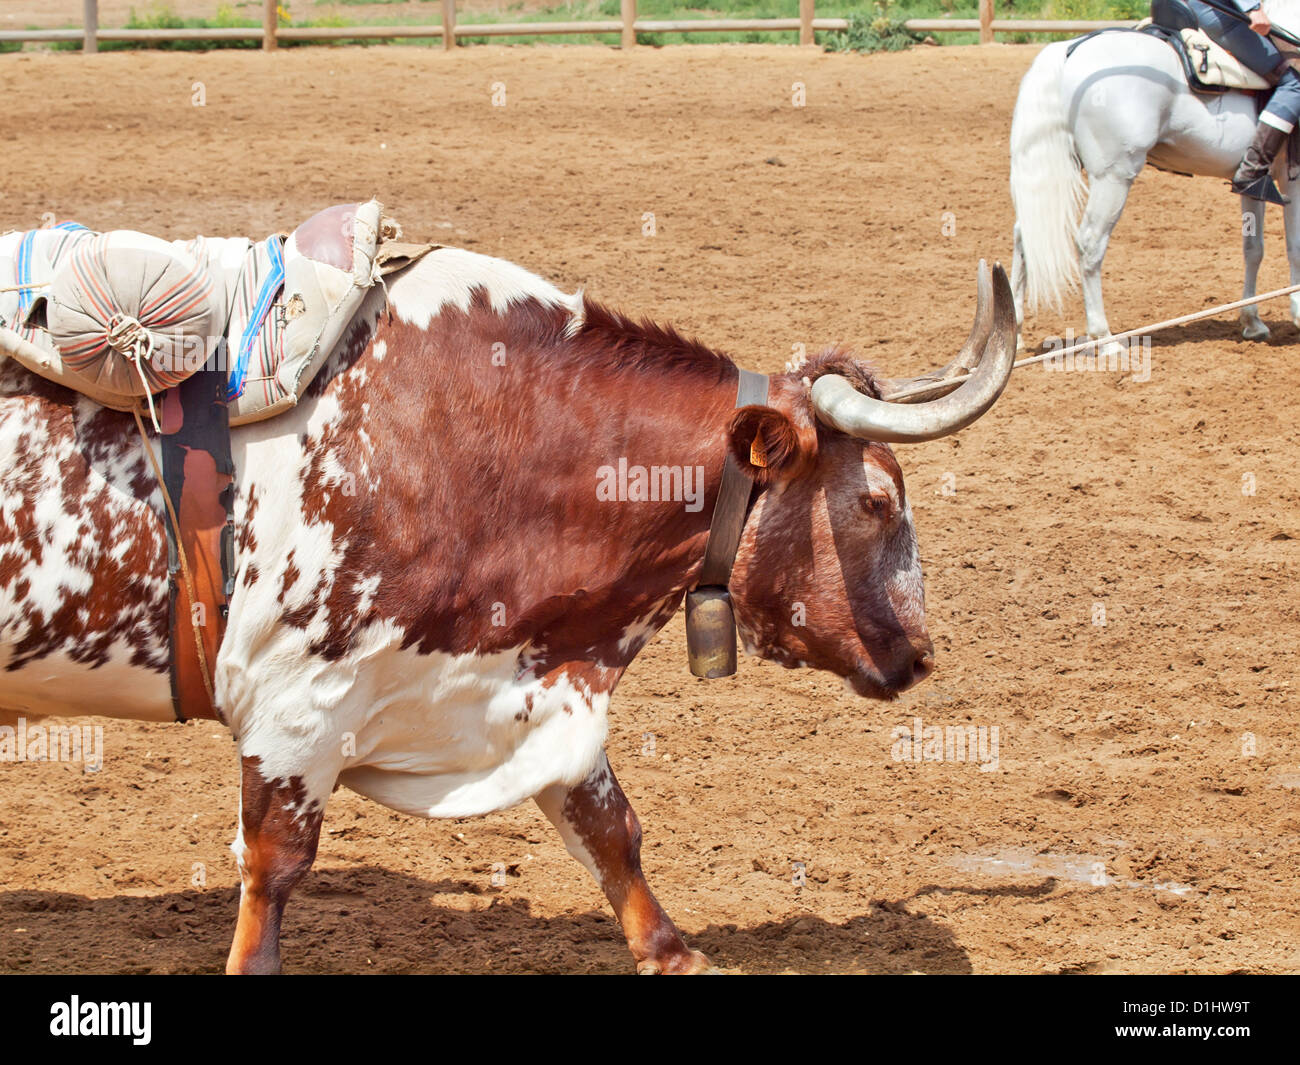 The spanish red bull with burden. Spain, Andalusia - Stock Image